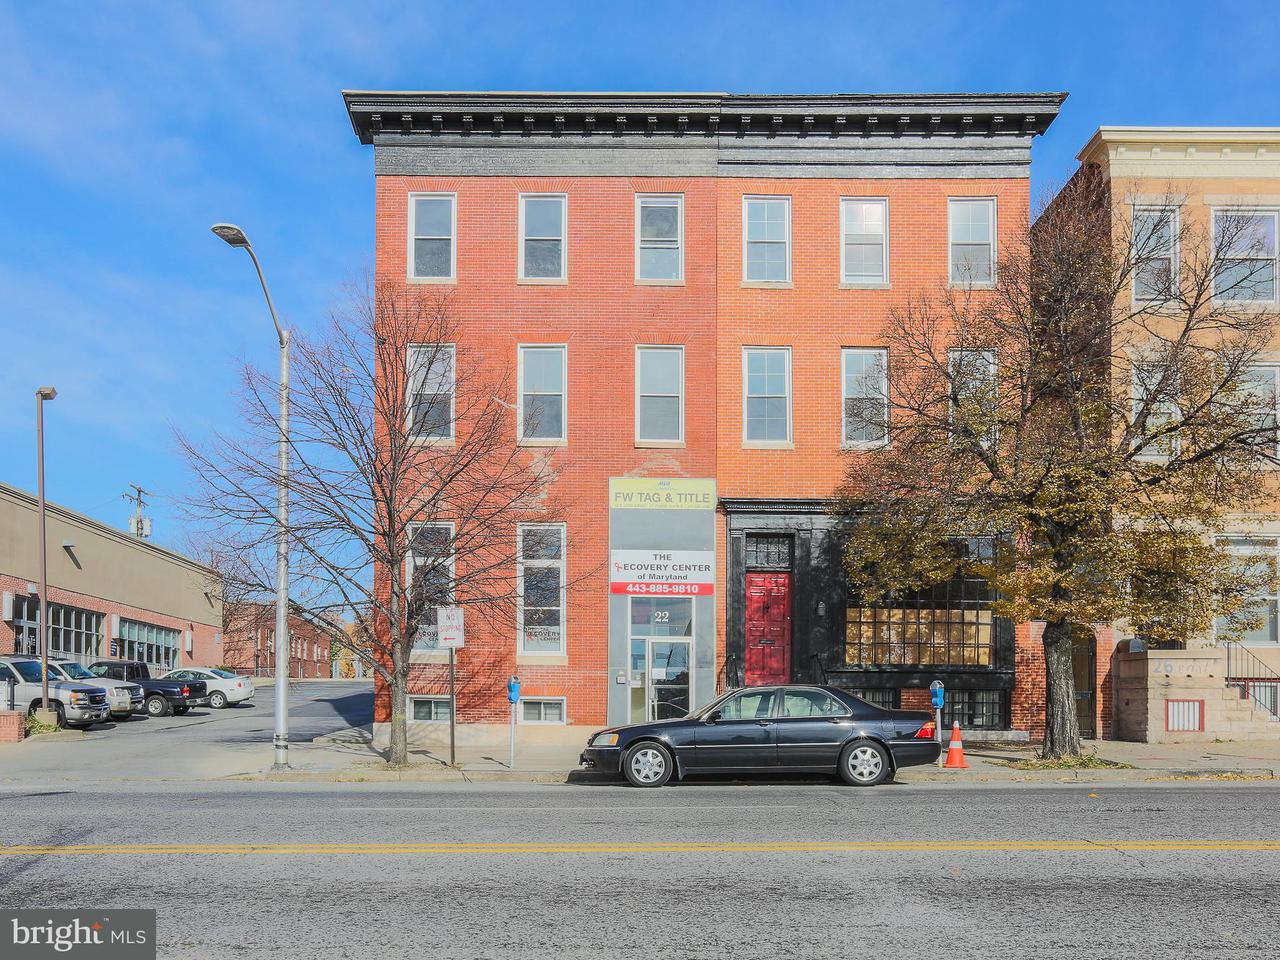 Commercial for Sale at 22 25th St E Baltimore, Maryland 21218 United States